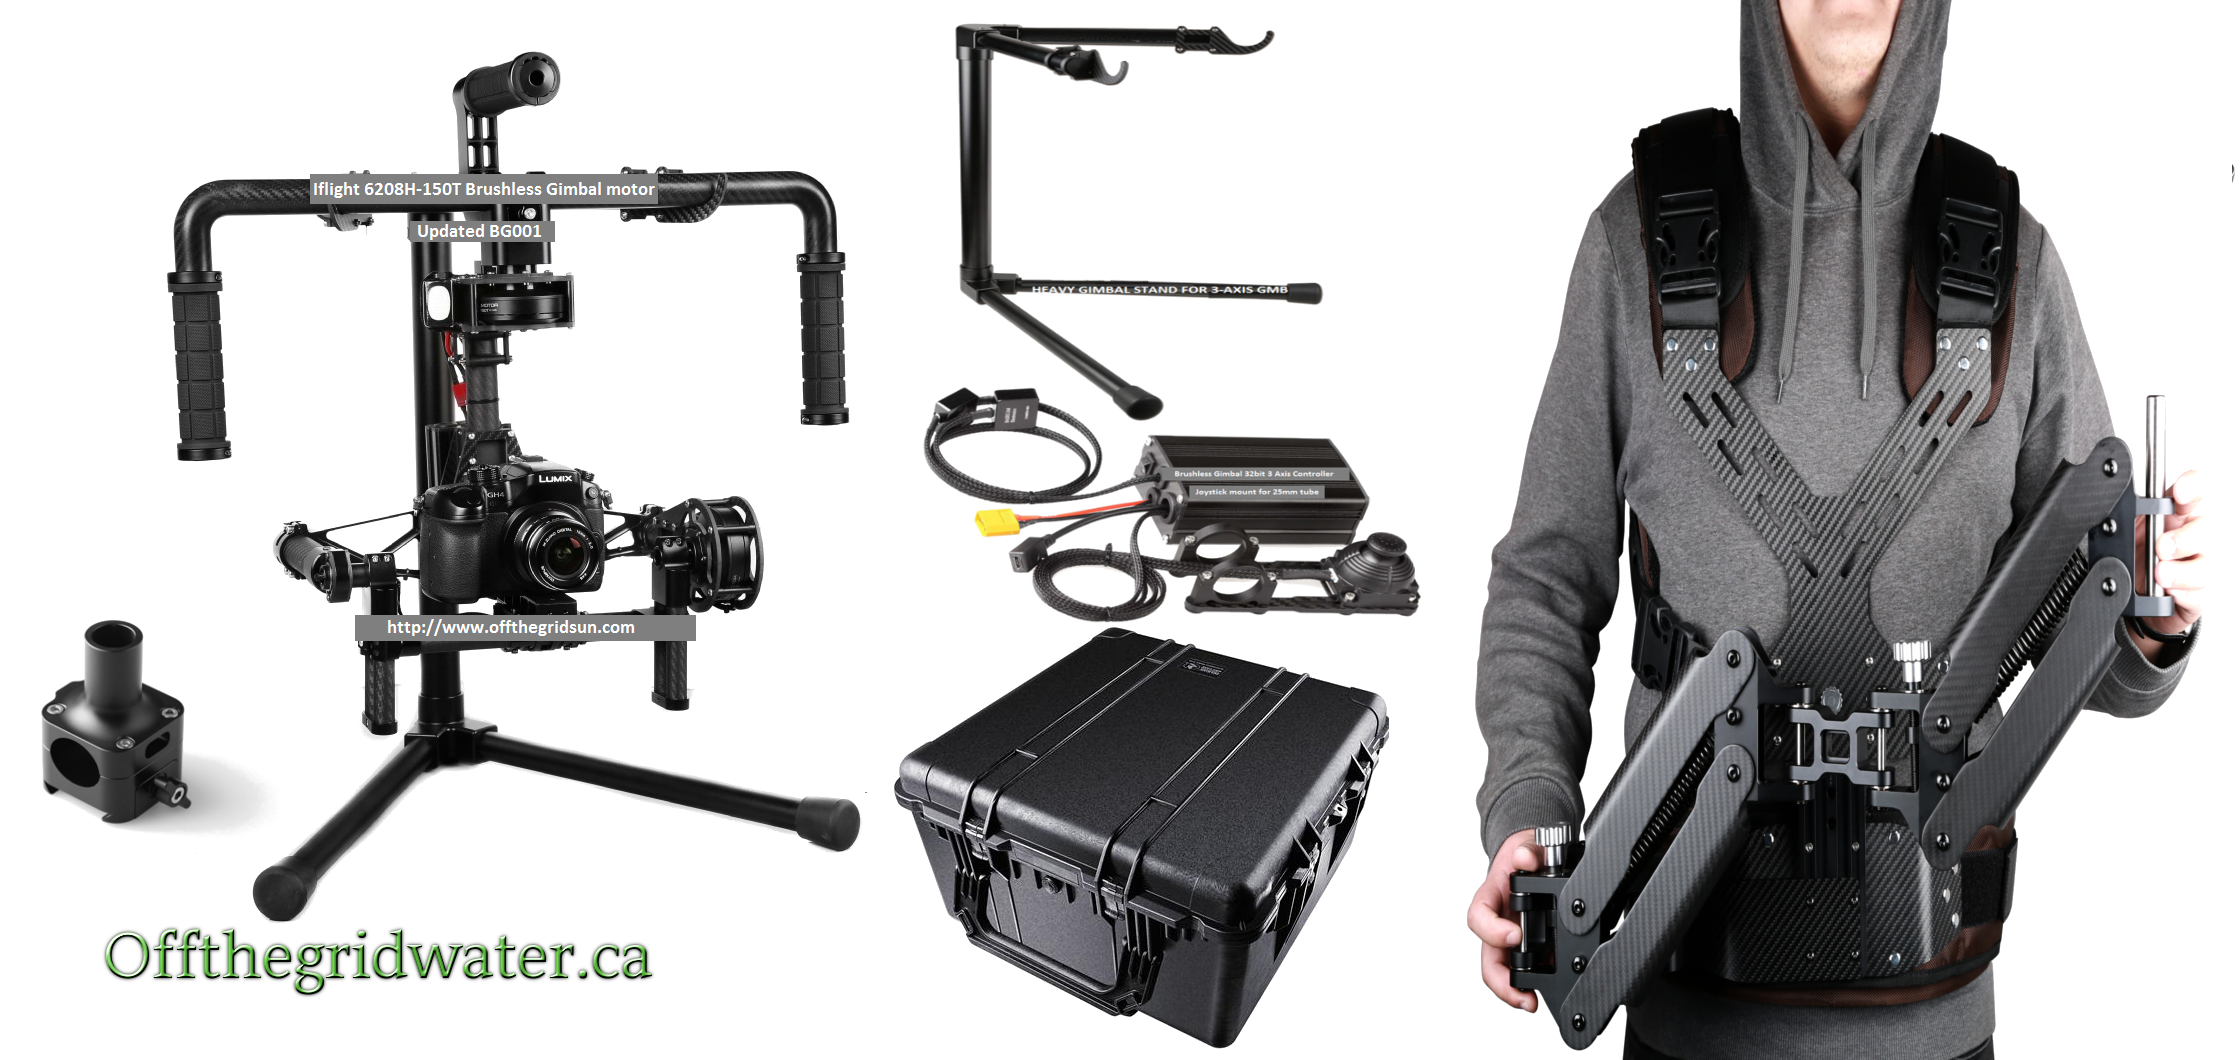 3 axis Gimbal system BGC Brushless with Steady cam Vest & case